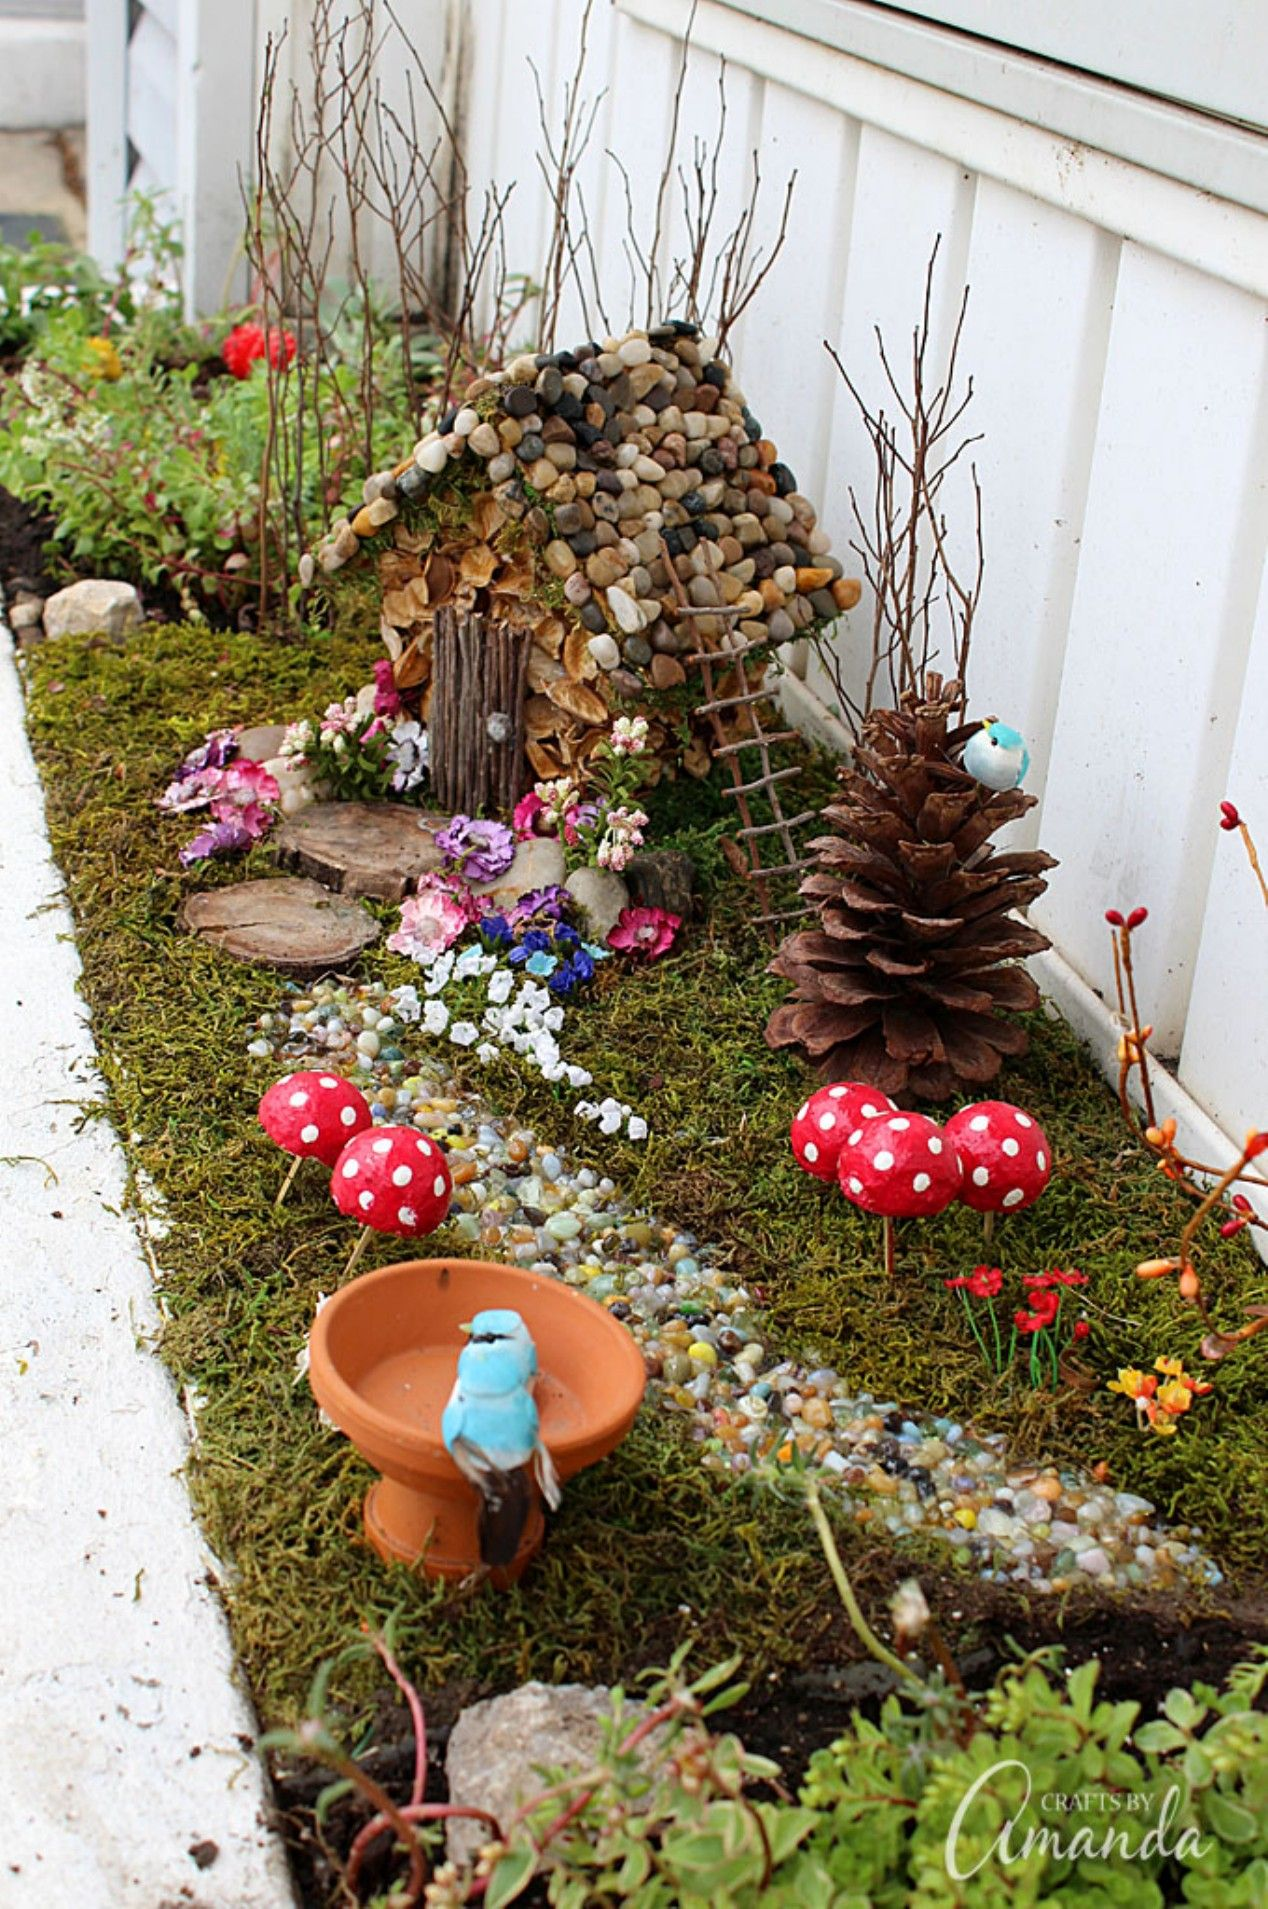 Georgetown Home And Garden Fairy #36 - Fairy House U0026 Garden: Year 2 Of The Craft Studio Fairy Garden